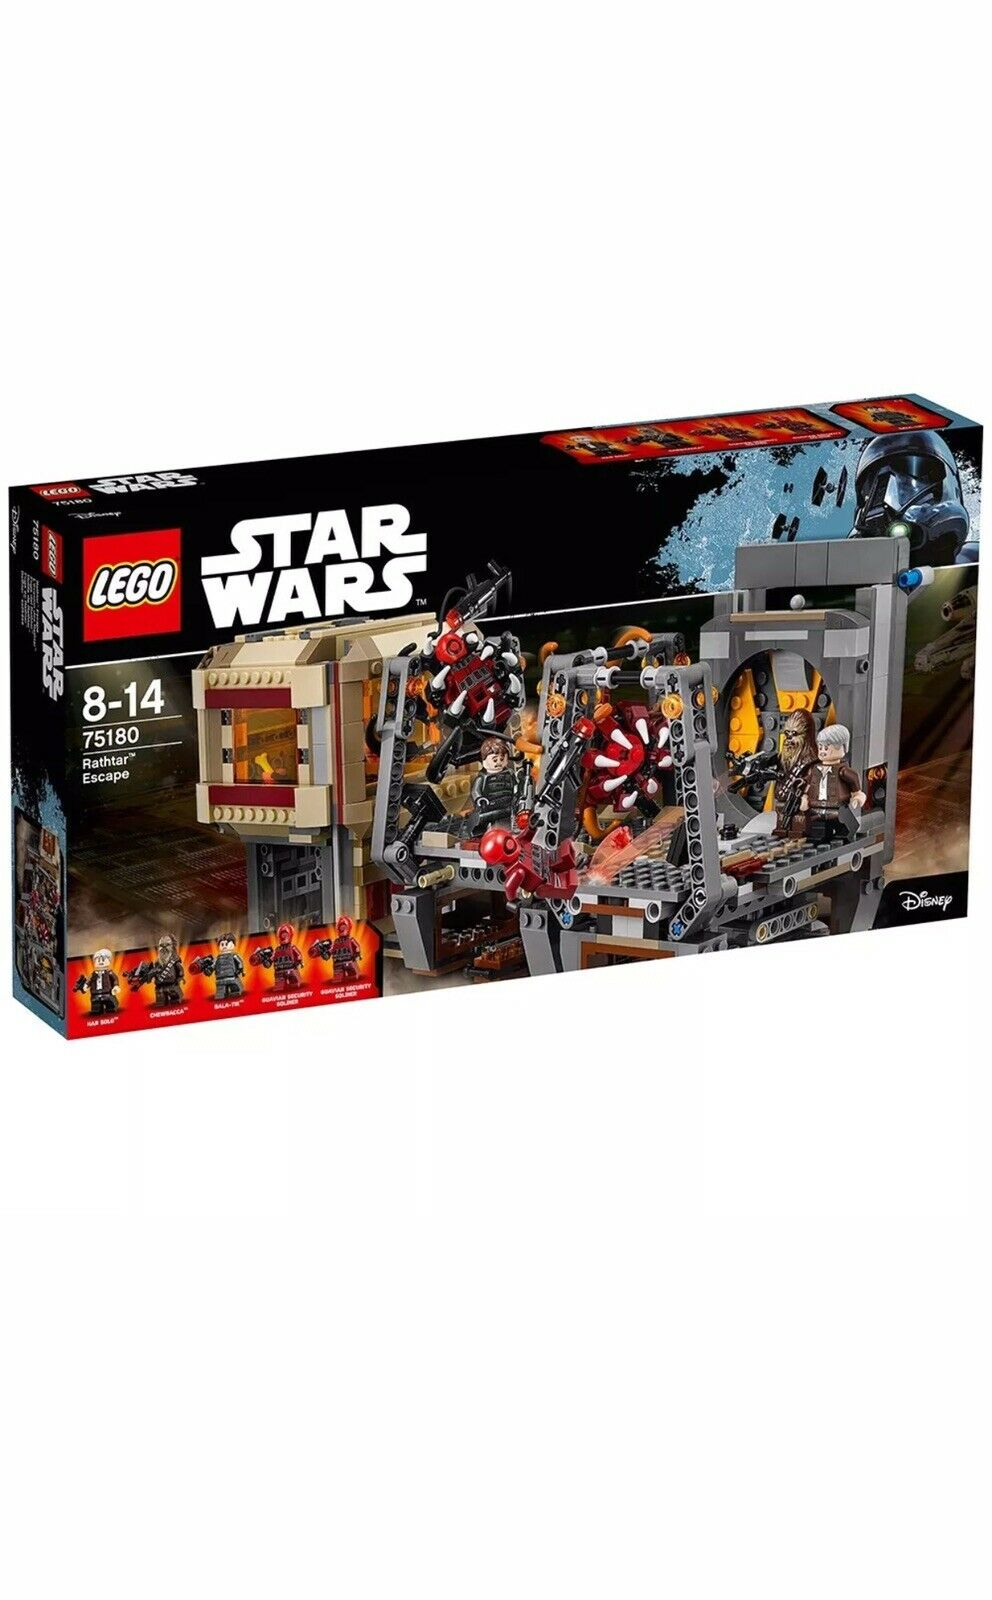 LEGO Star Wars 75180   Rathtar Escape - Brand New